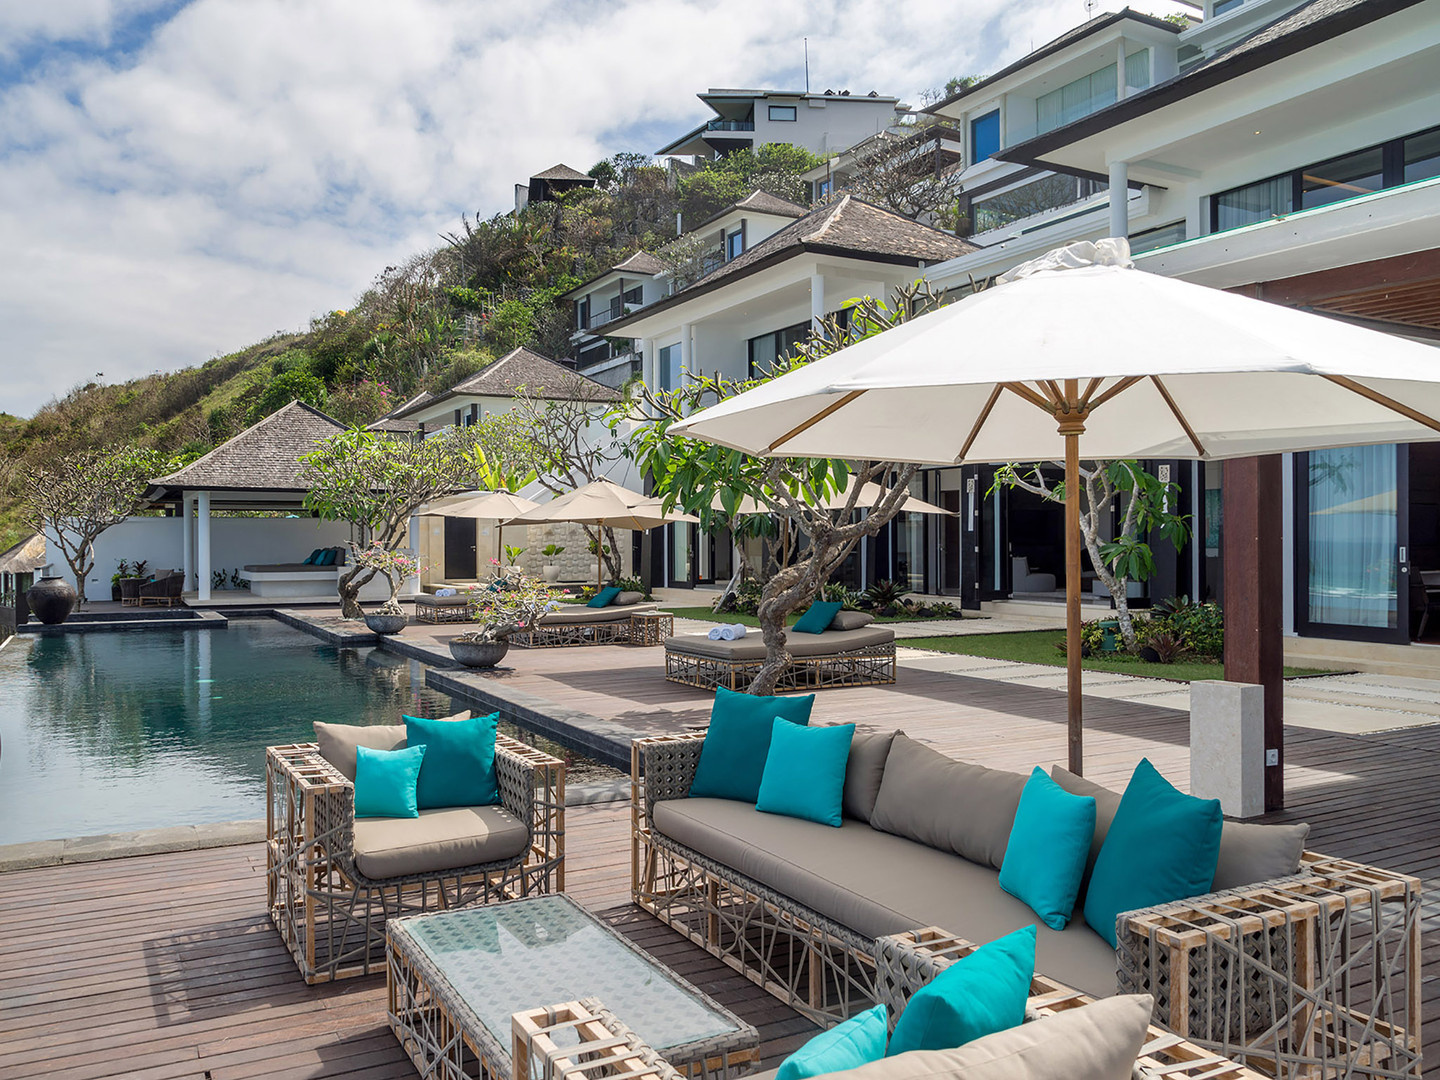 7. Grand Cliff Nusa Dua - Villa feature.